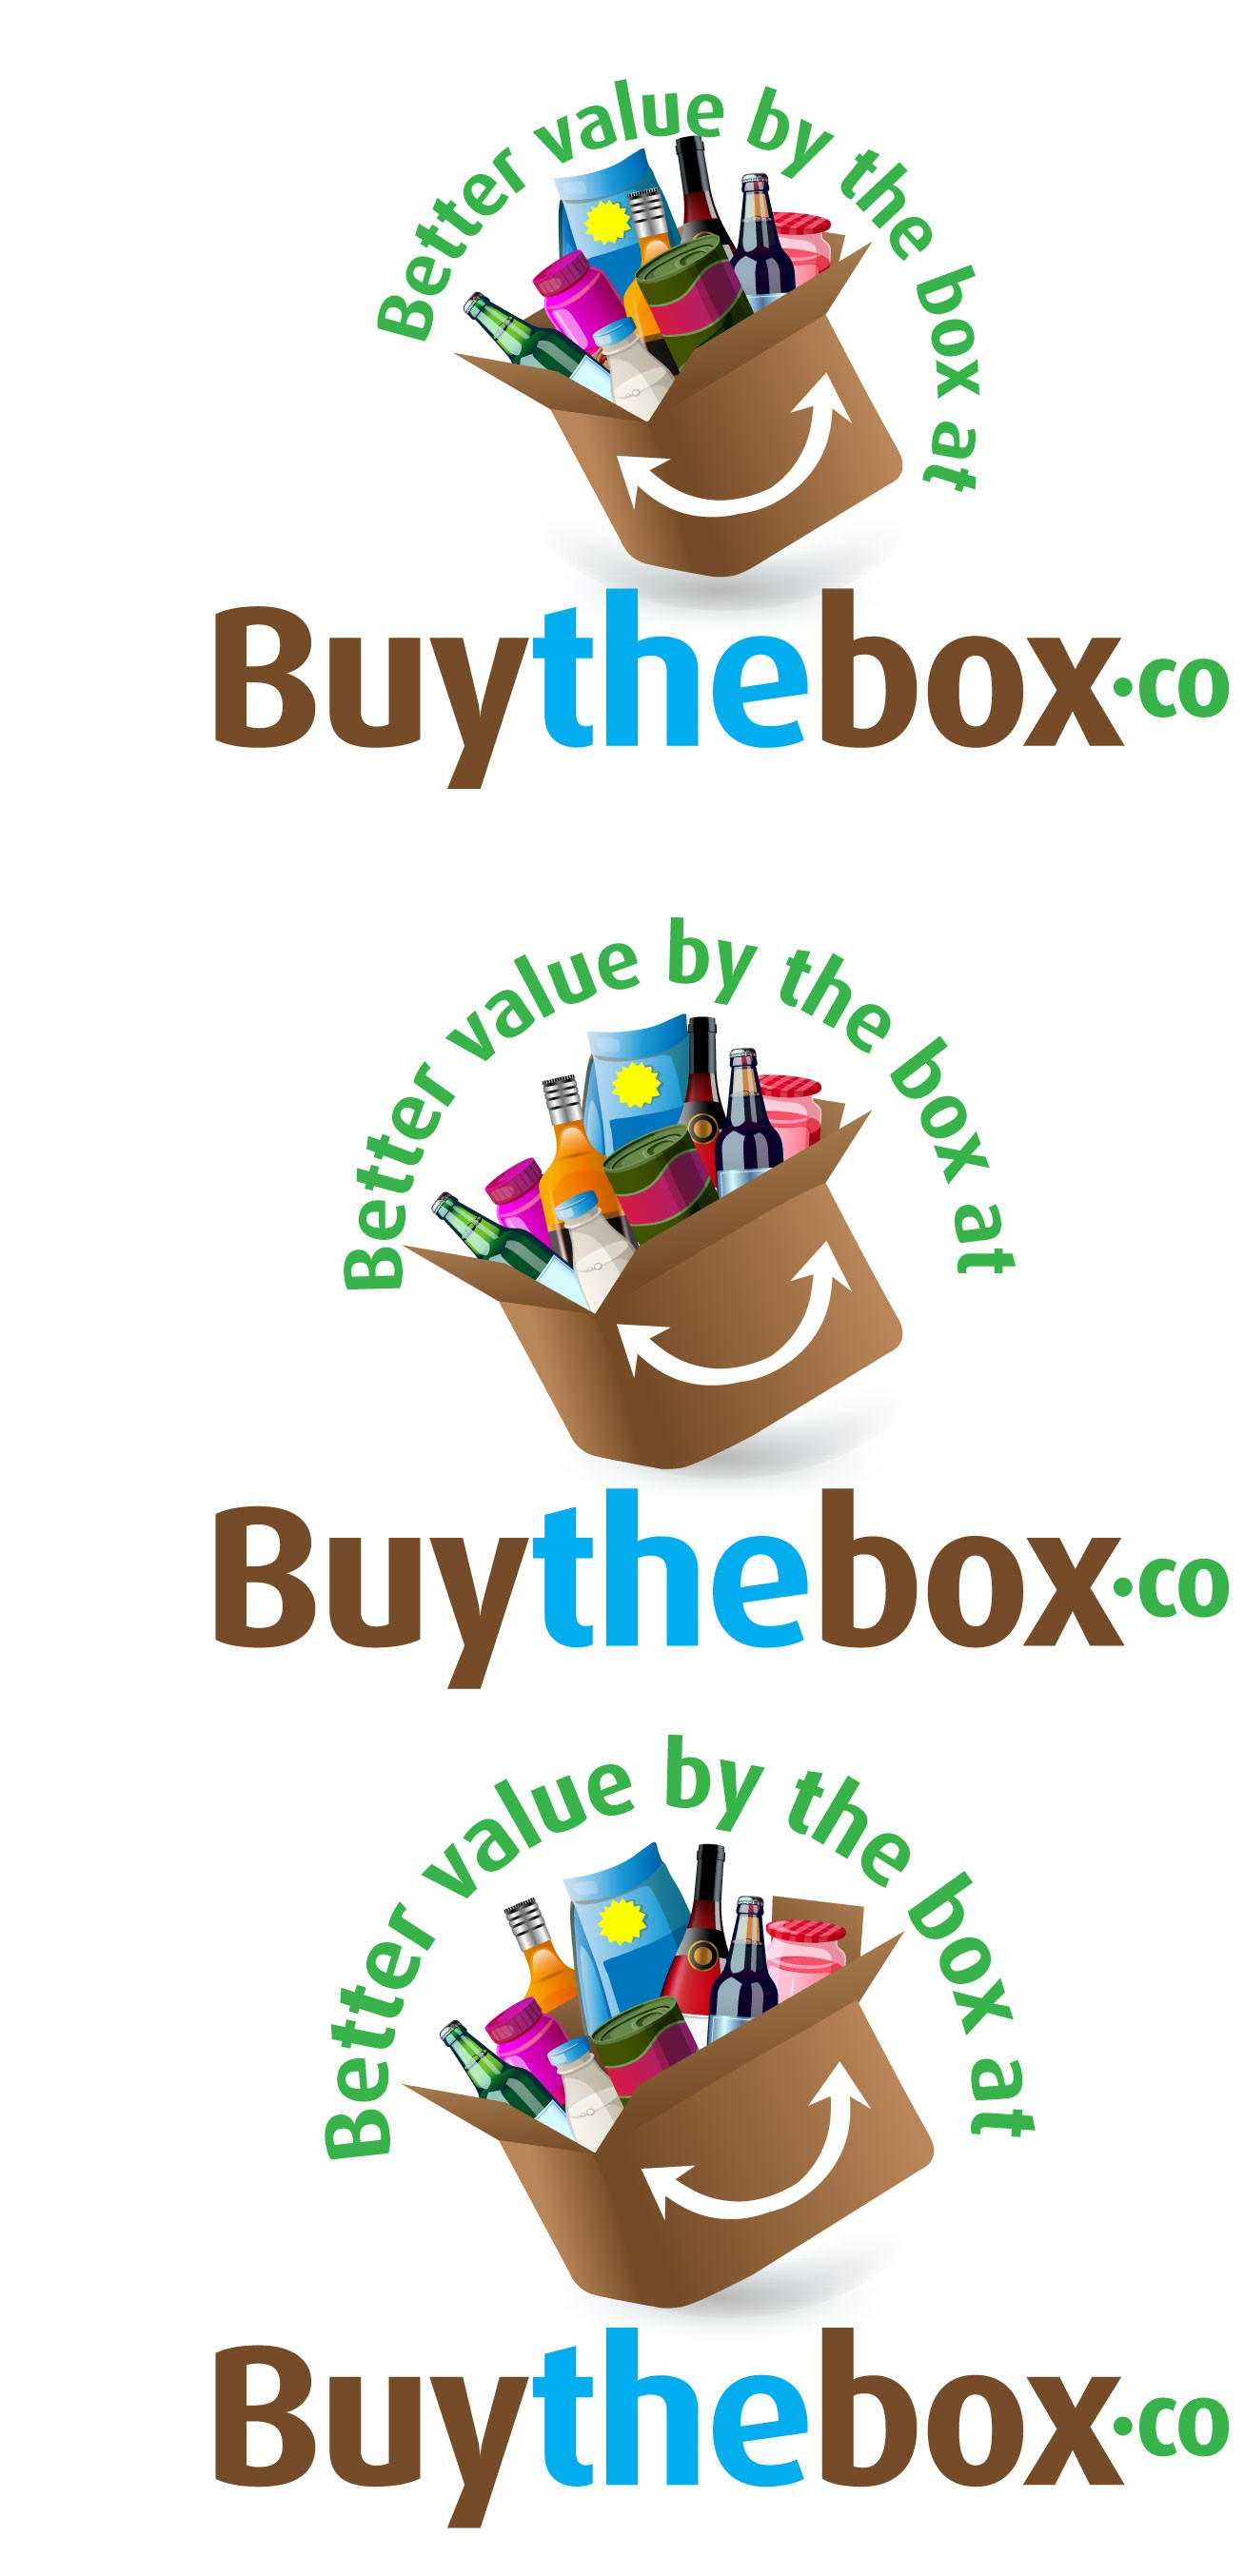 Online marketplace for sellers of independent food & beverage brands and supportive buyers